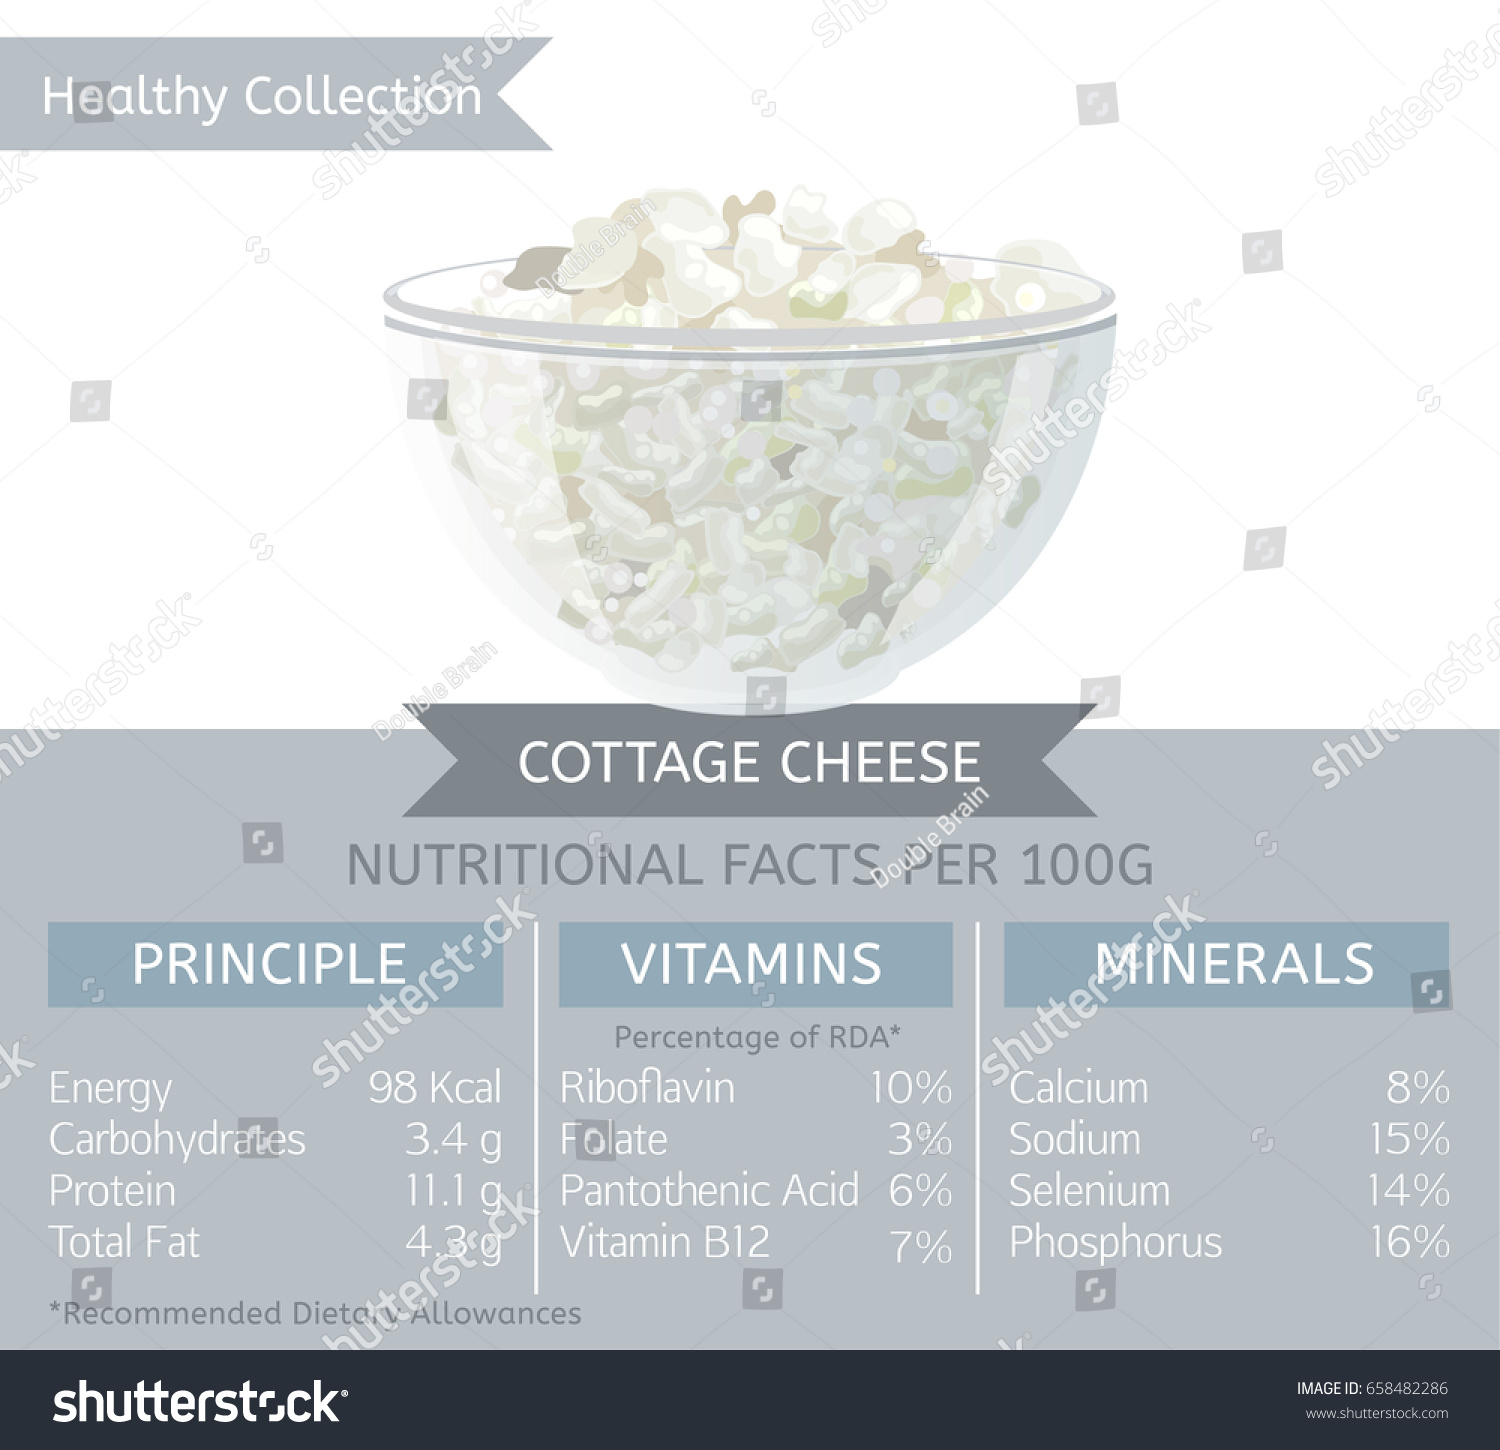 Great Cottage Cheese Health Benefits. Vector Illustration With Useful Nutritional  Facts. Essential Vitamins And Minerals